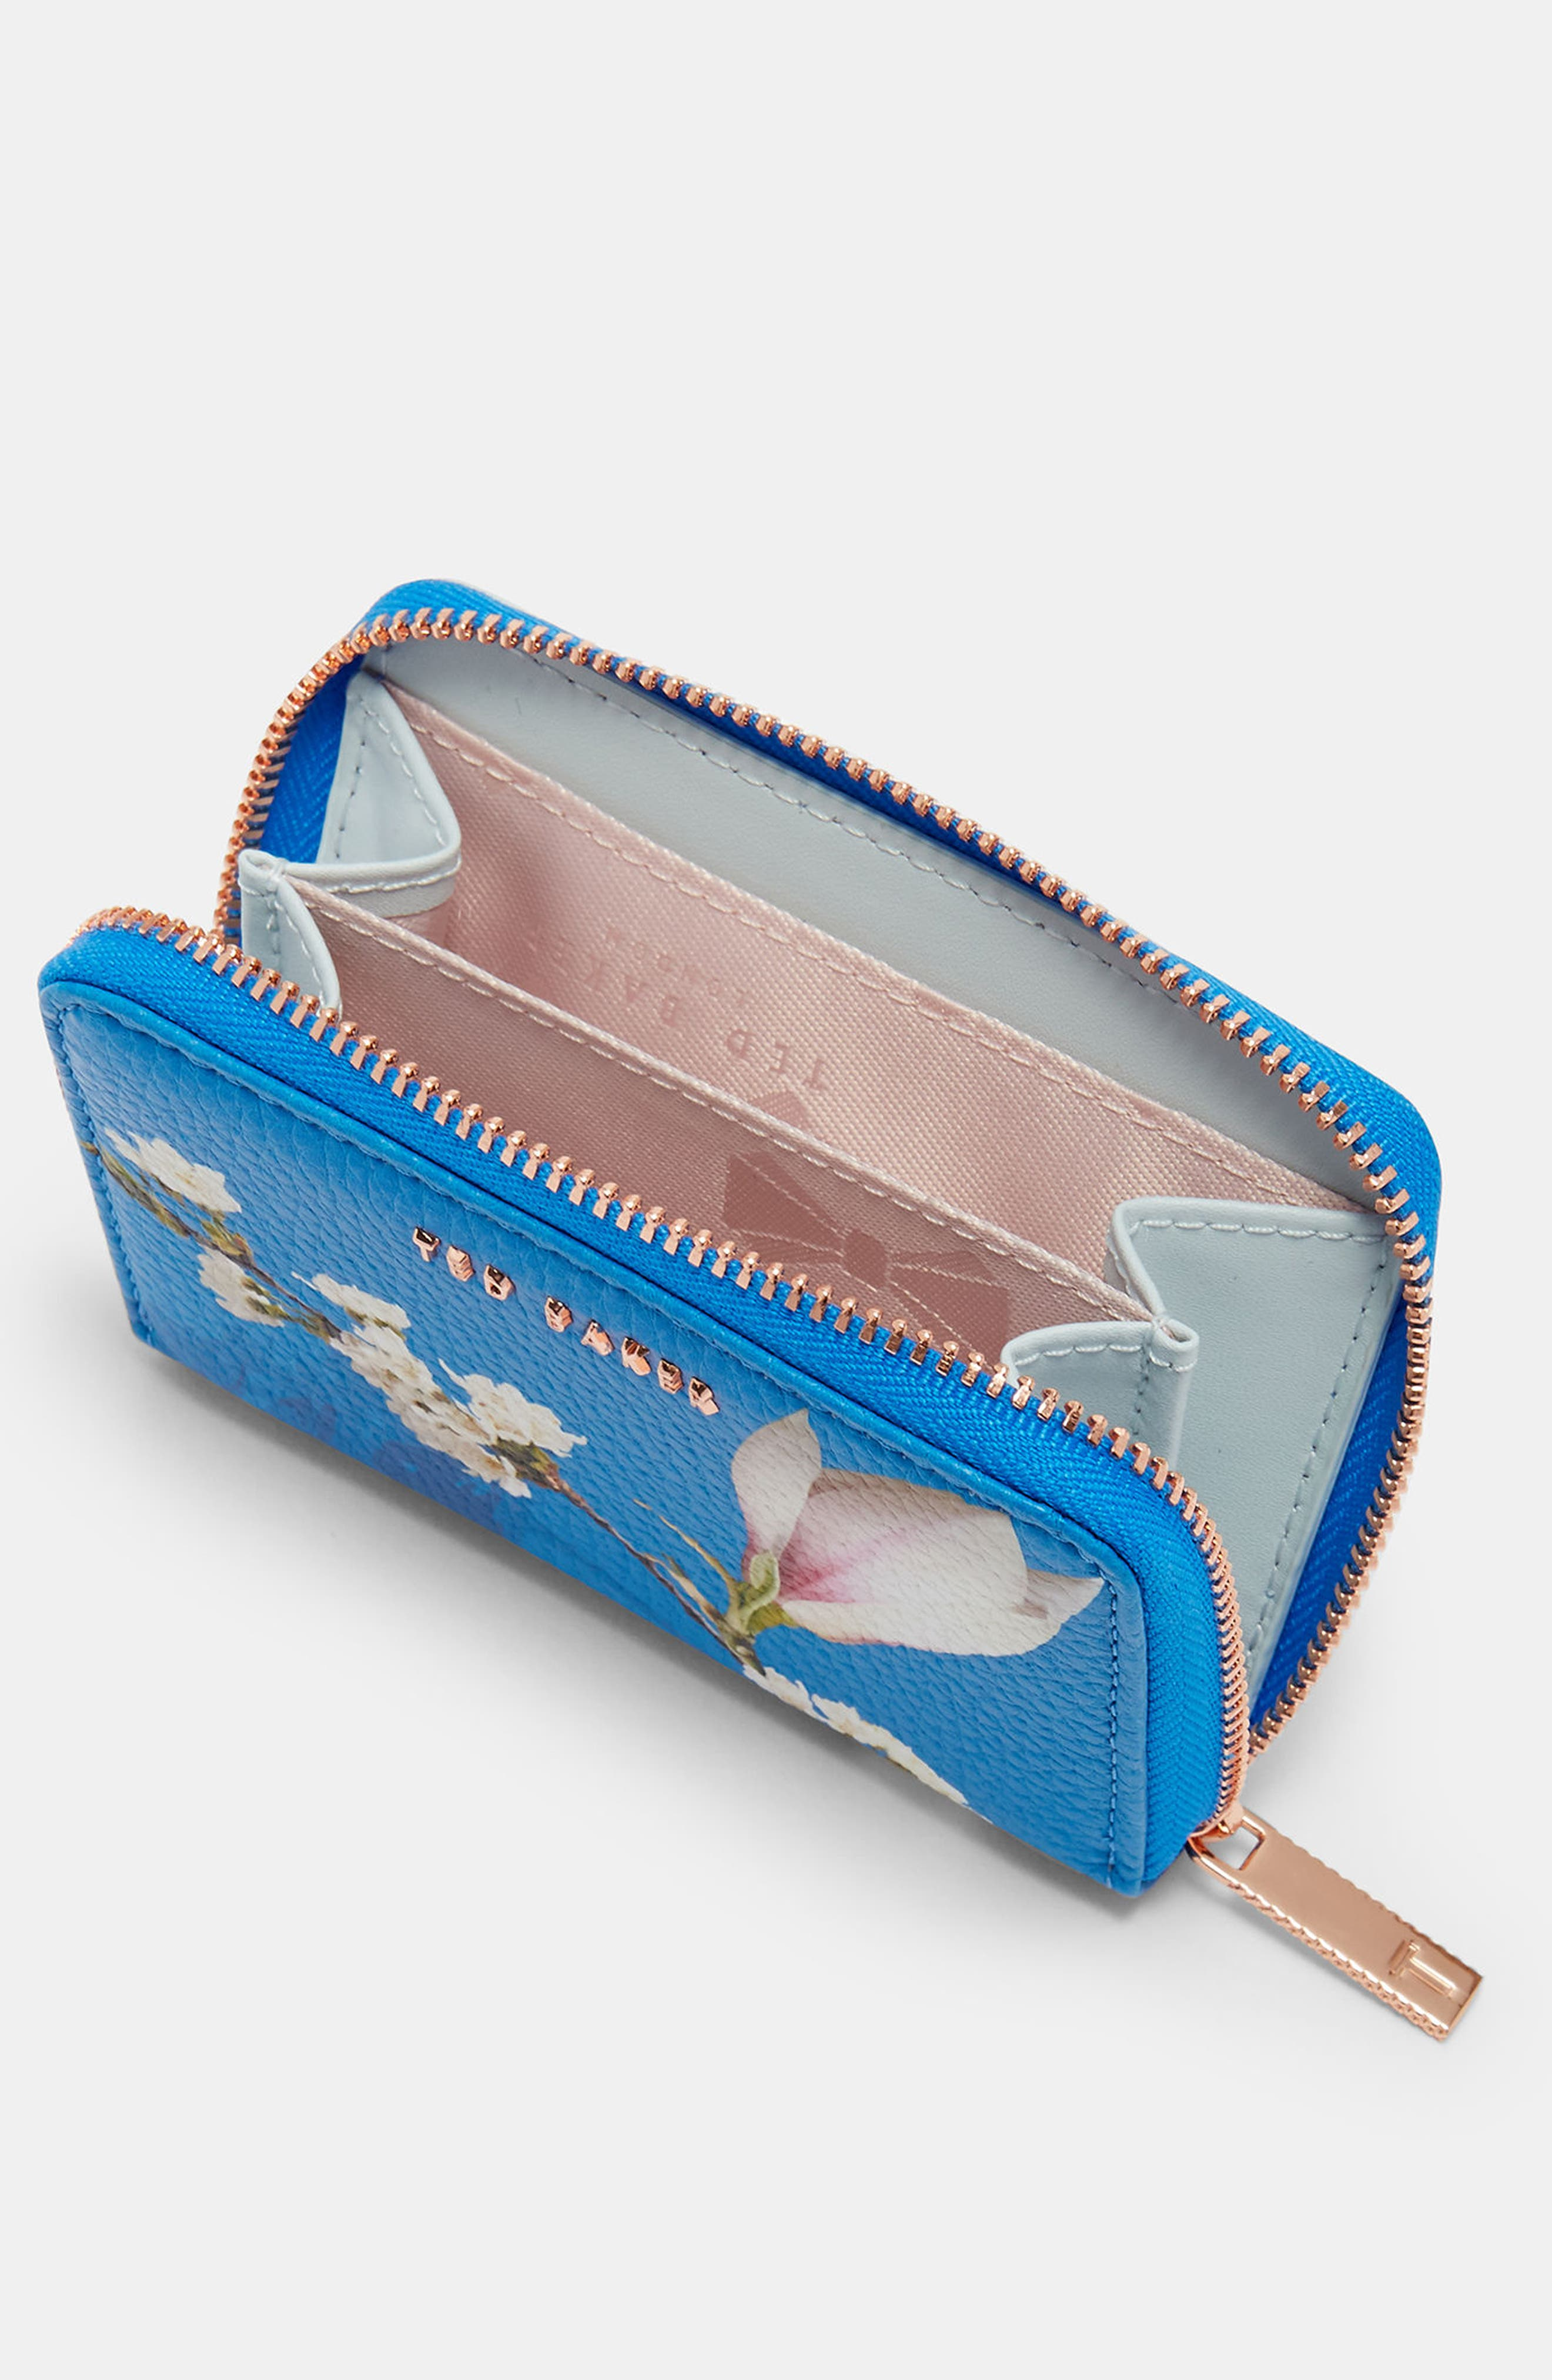 Corri Harmony Print Leather Zip Coin Purse,                             Alternate thumbnail 3, color,                             Bright Blue